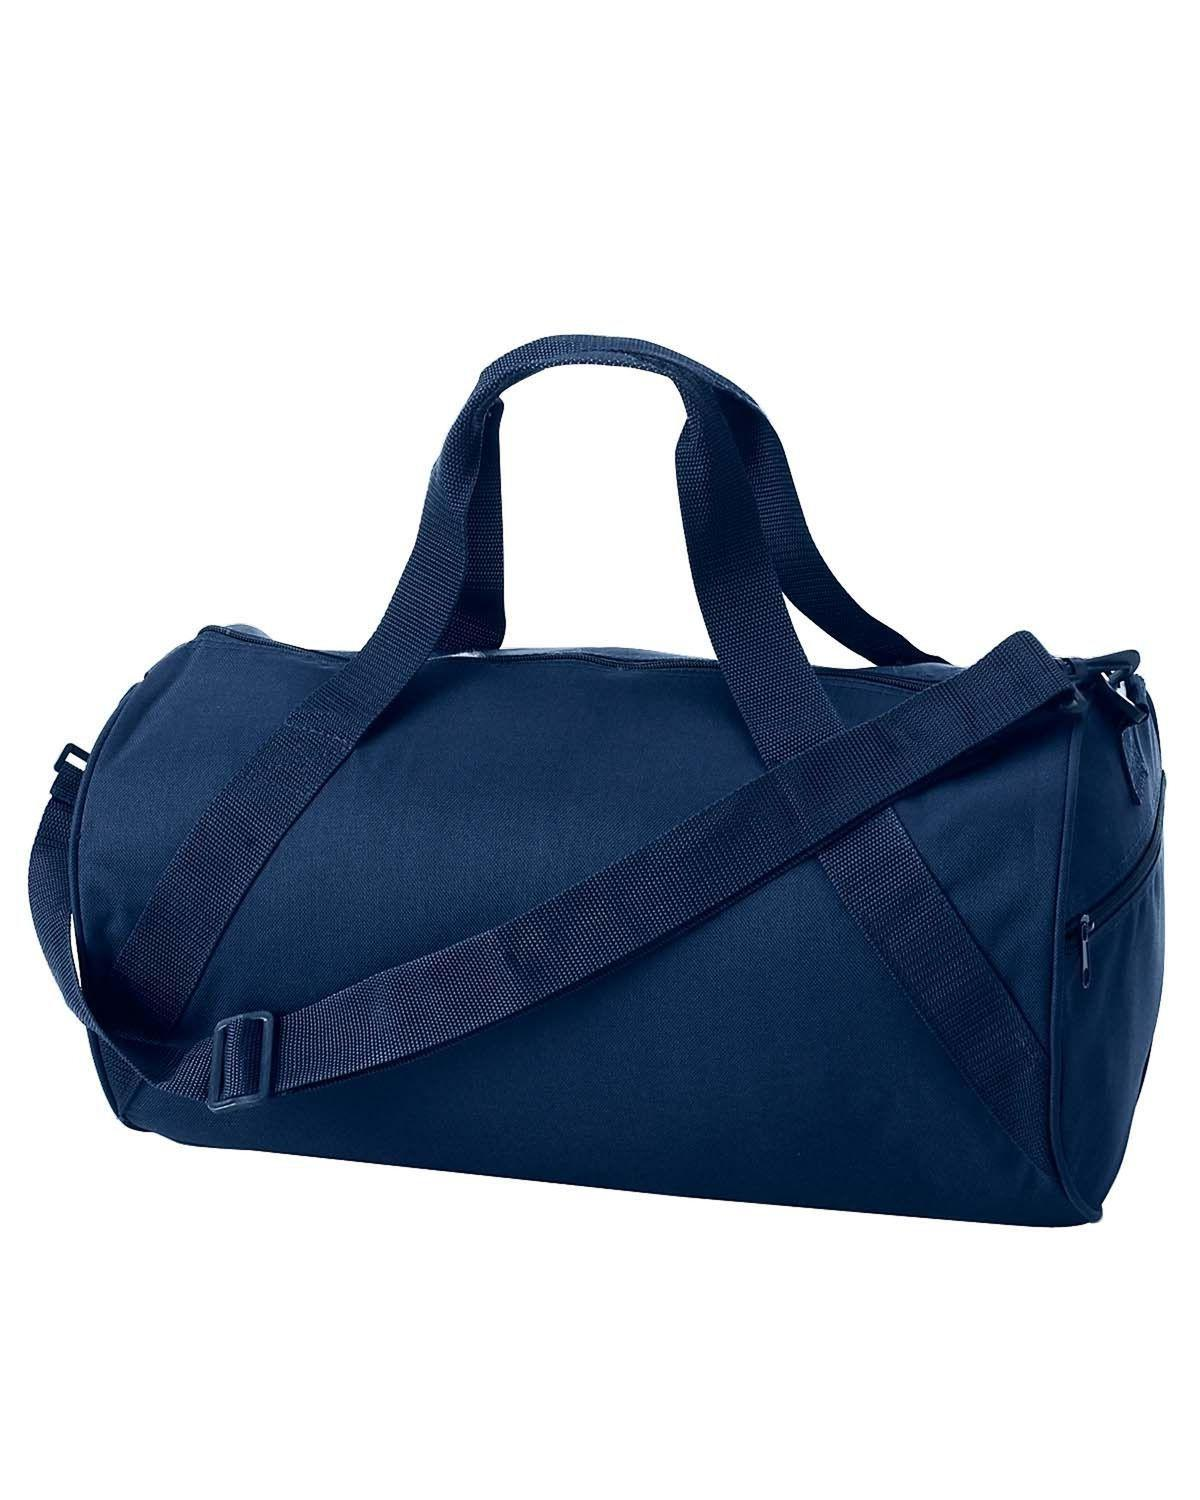 Liberty Recycled Duffle, Bag, tote, 8805